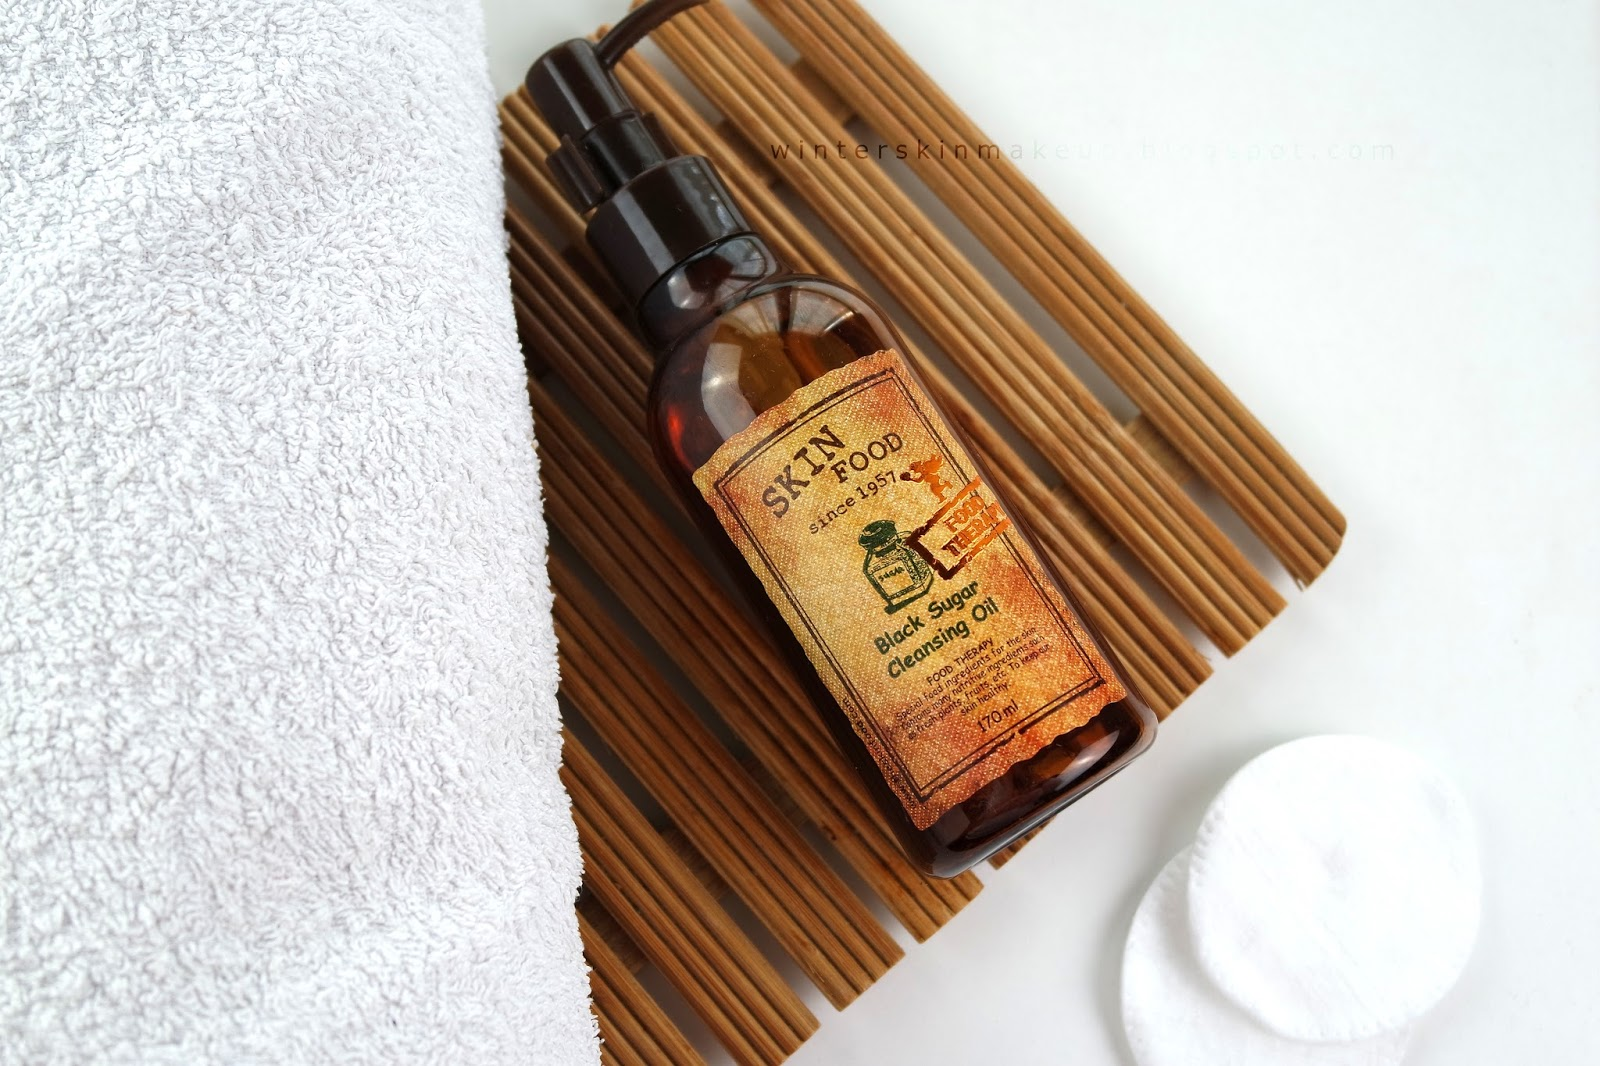 Skinfood Black Sugar Cleansing Oil